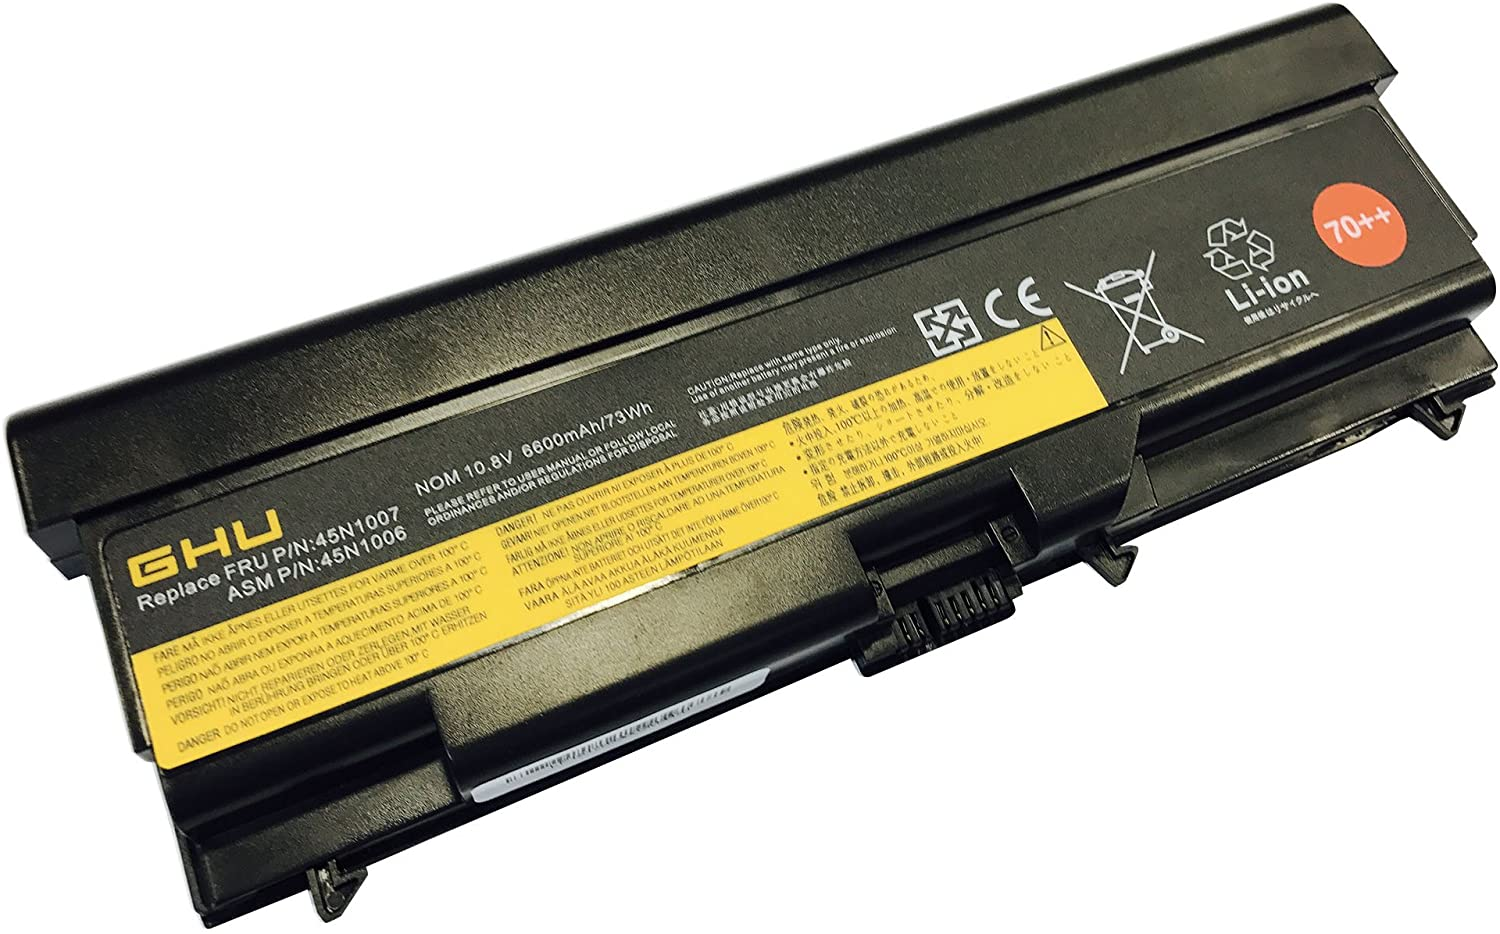 New GHU Battery 70++ 73 WH Replacement for 0A36303 0A36302 45N1001 45N1005 45N1007 Compatible with Lenovo ThinkPad 45N1011 45N1173 42T4753 51J0499 57Y4185 57Y4186 42T4791 42T4799 42T4911